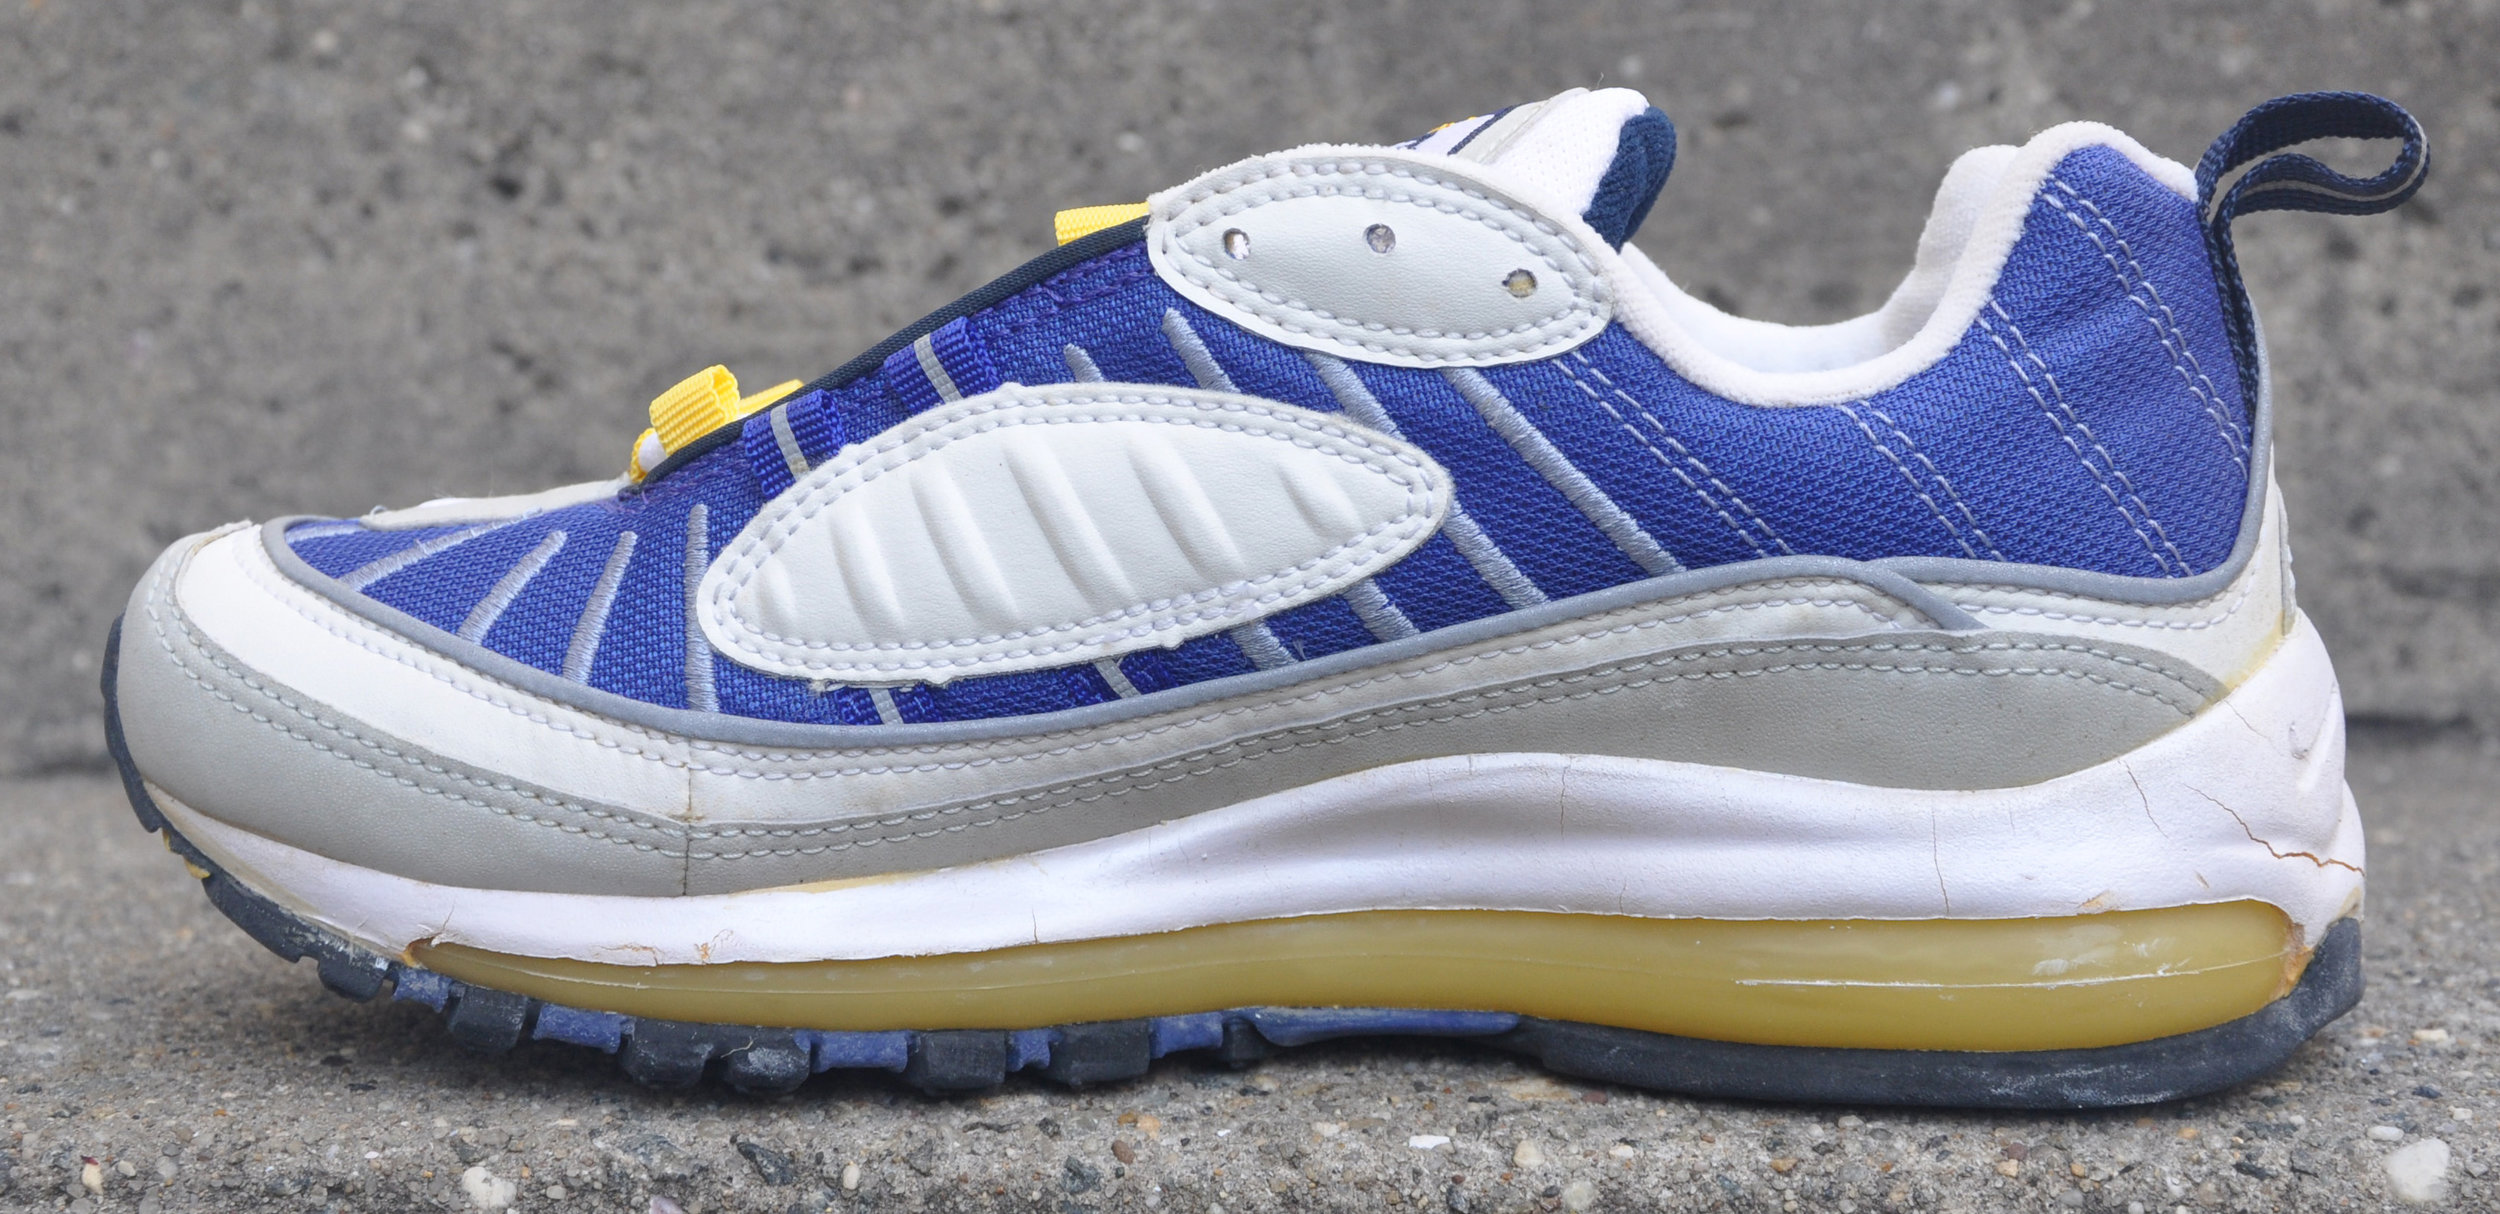 Women`s Nike Air Max 98 Ultramarine (Size 7.5) DS Cracking — Roots